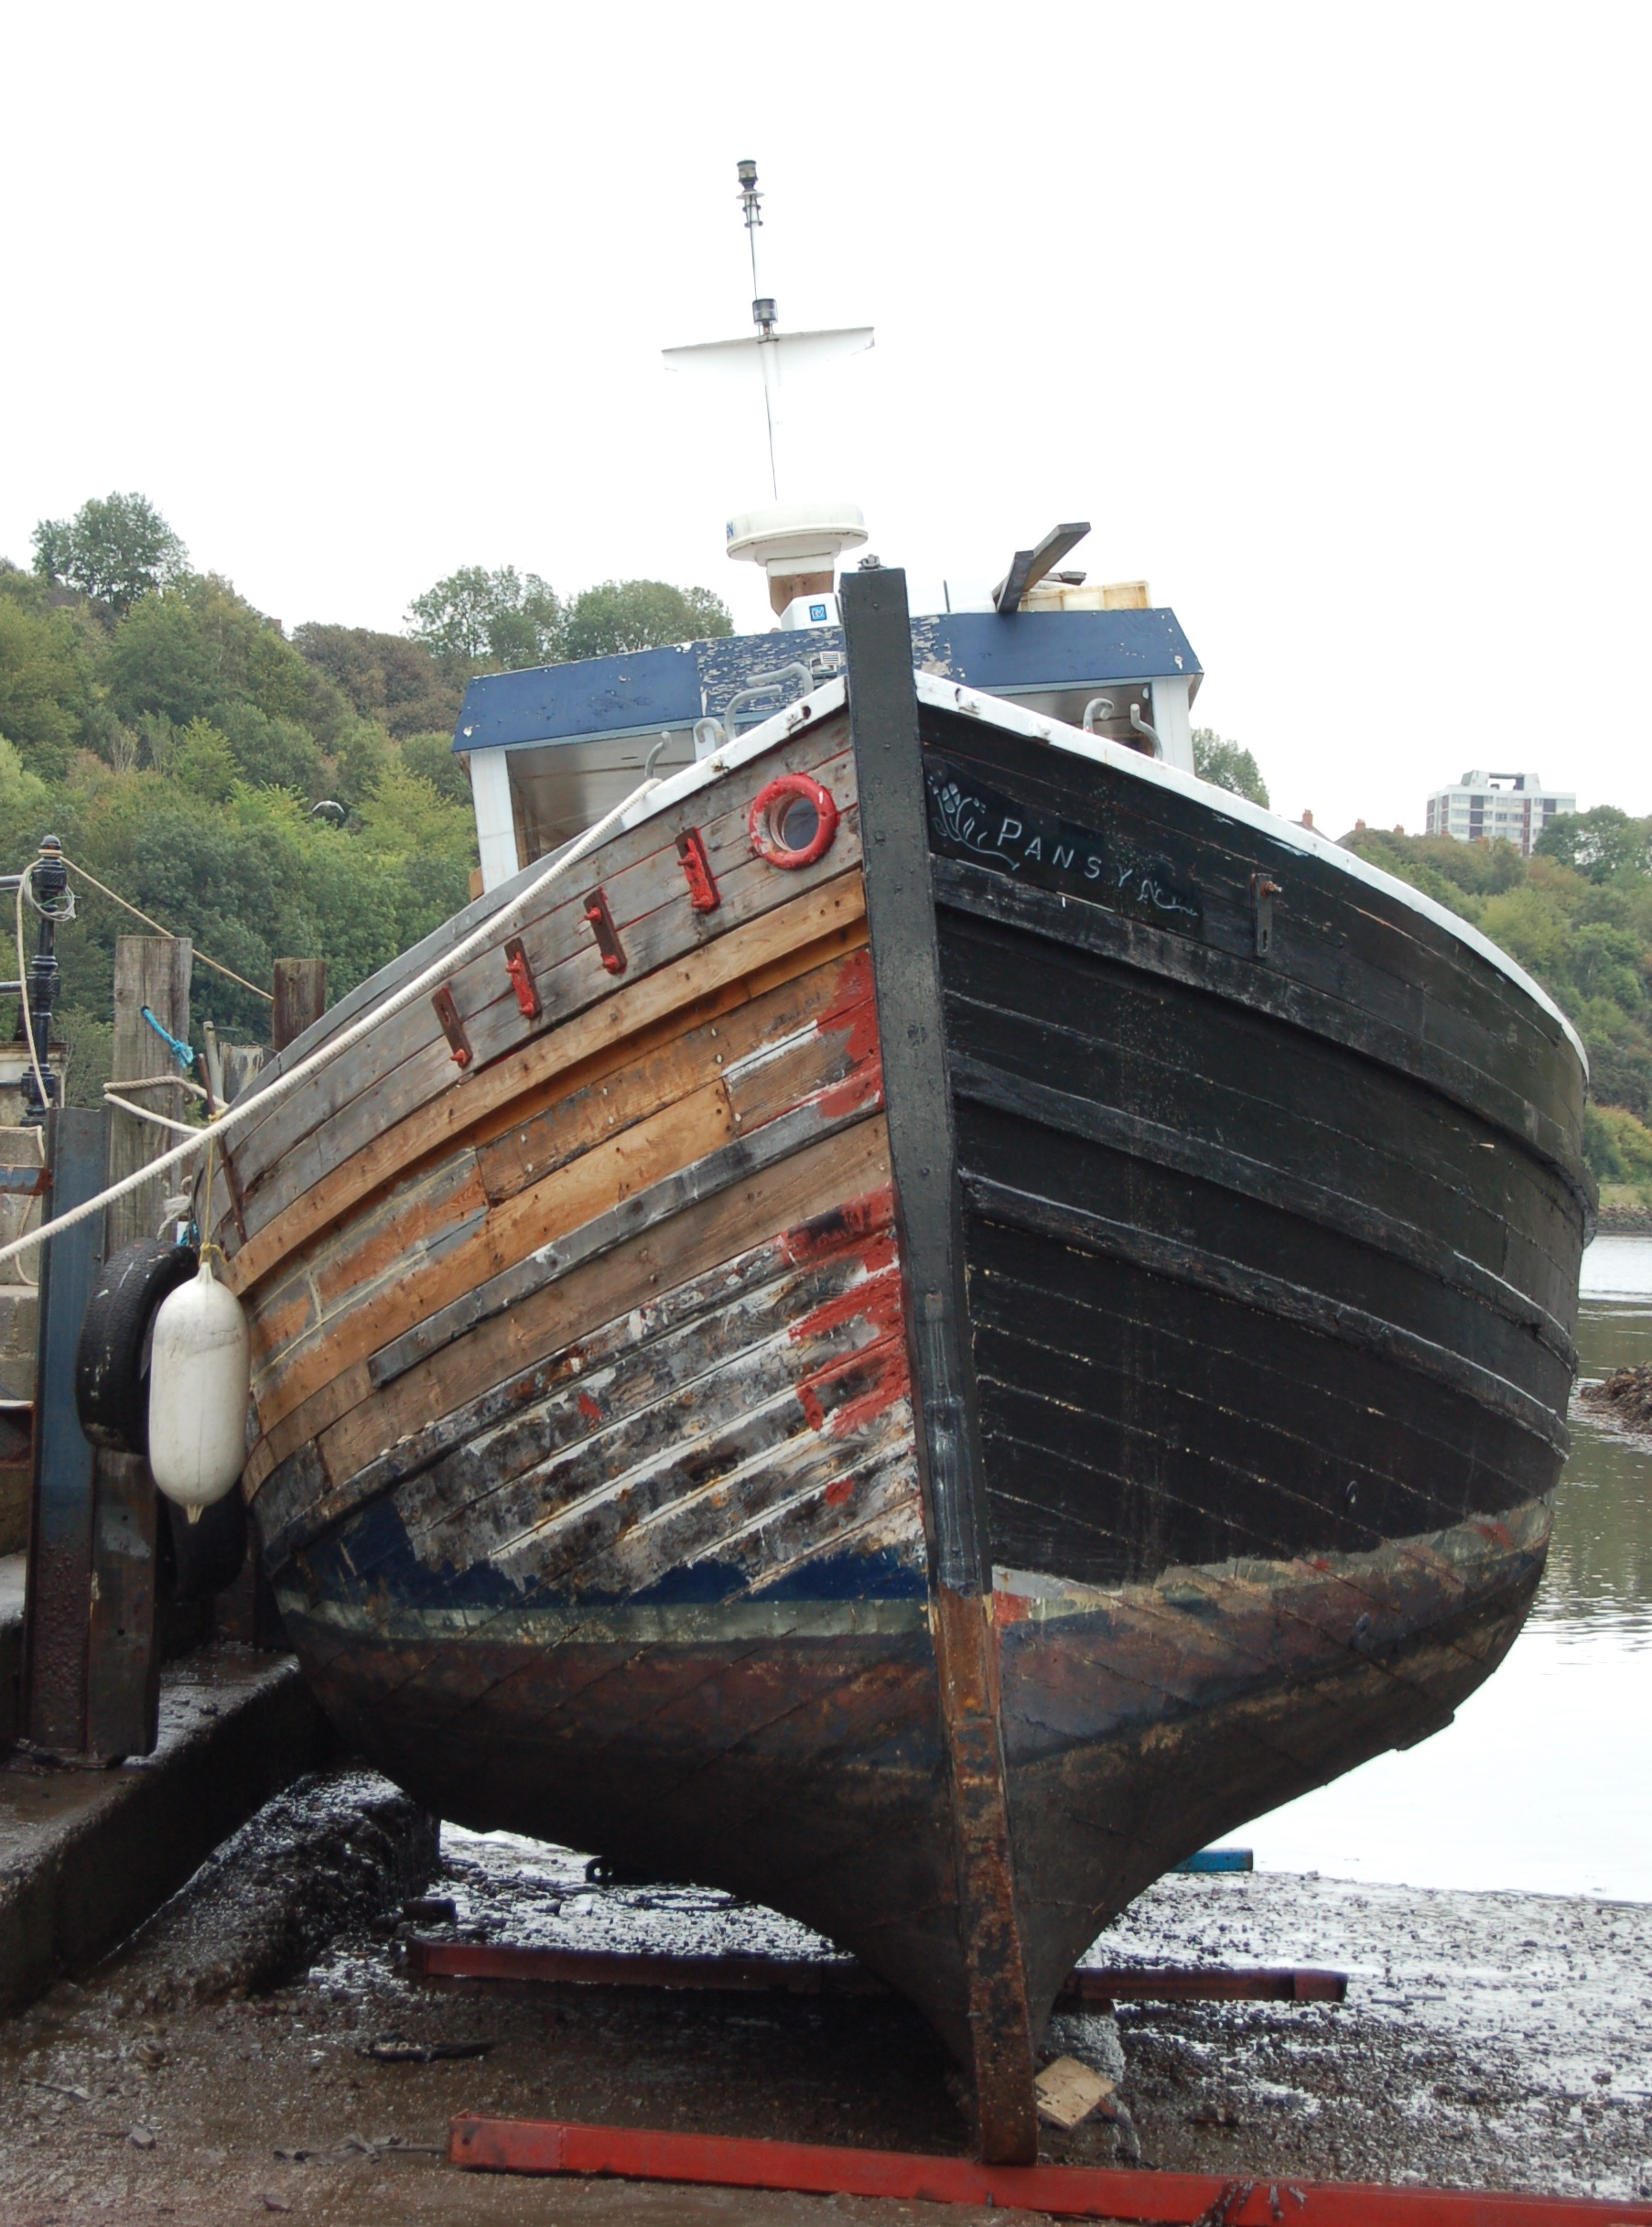 WTF!! A boat that sinks on dry land